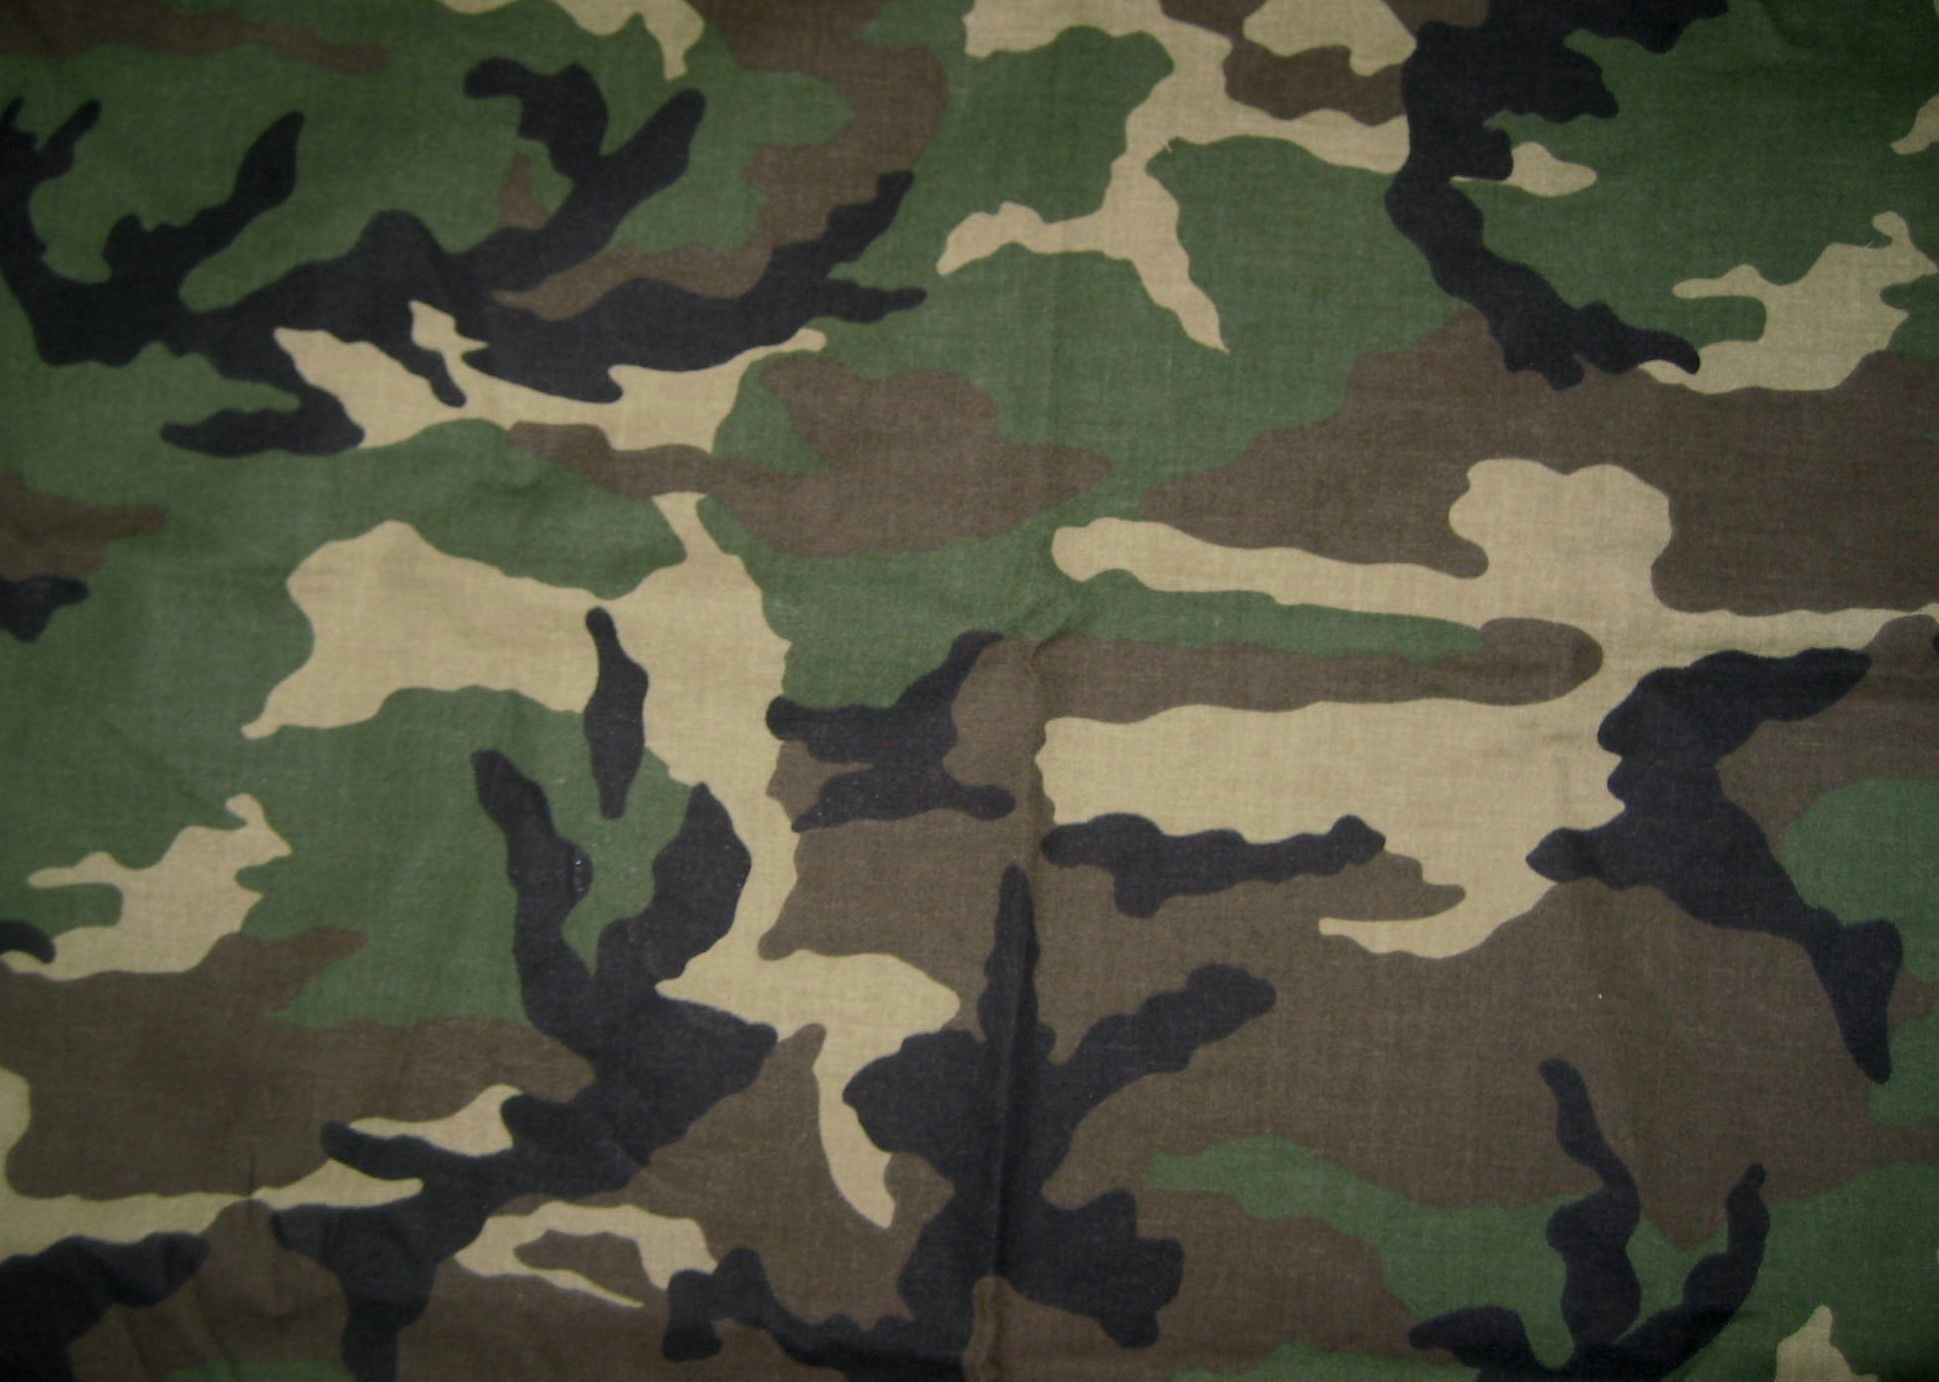 1080x1920 Camouflage Wallpaper For IPhone Or Android Tags Camo Hunting Army Backgrounds